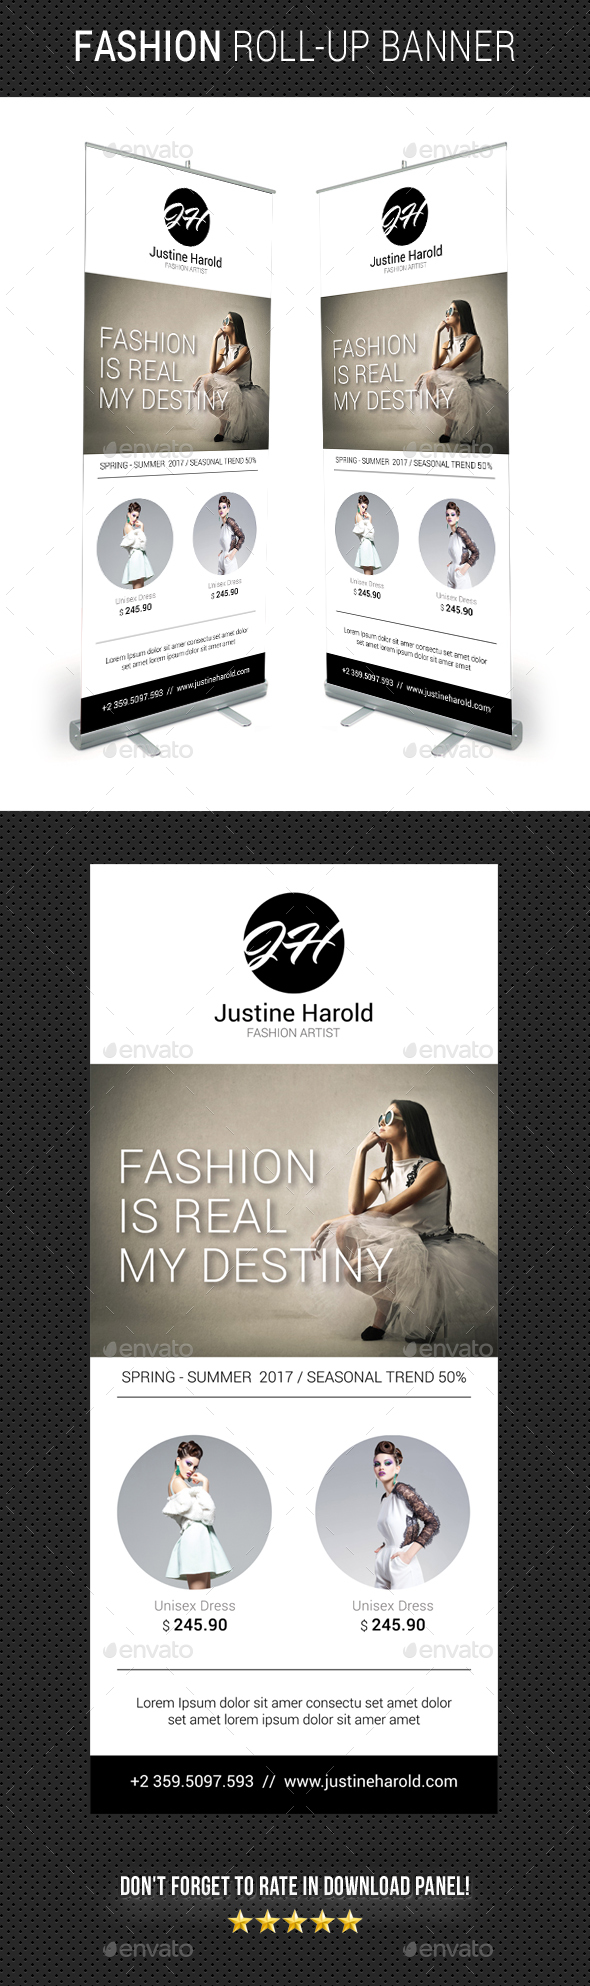 Fashion Roll-Up Banner 03 - Signage Print Templates